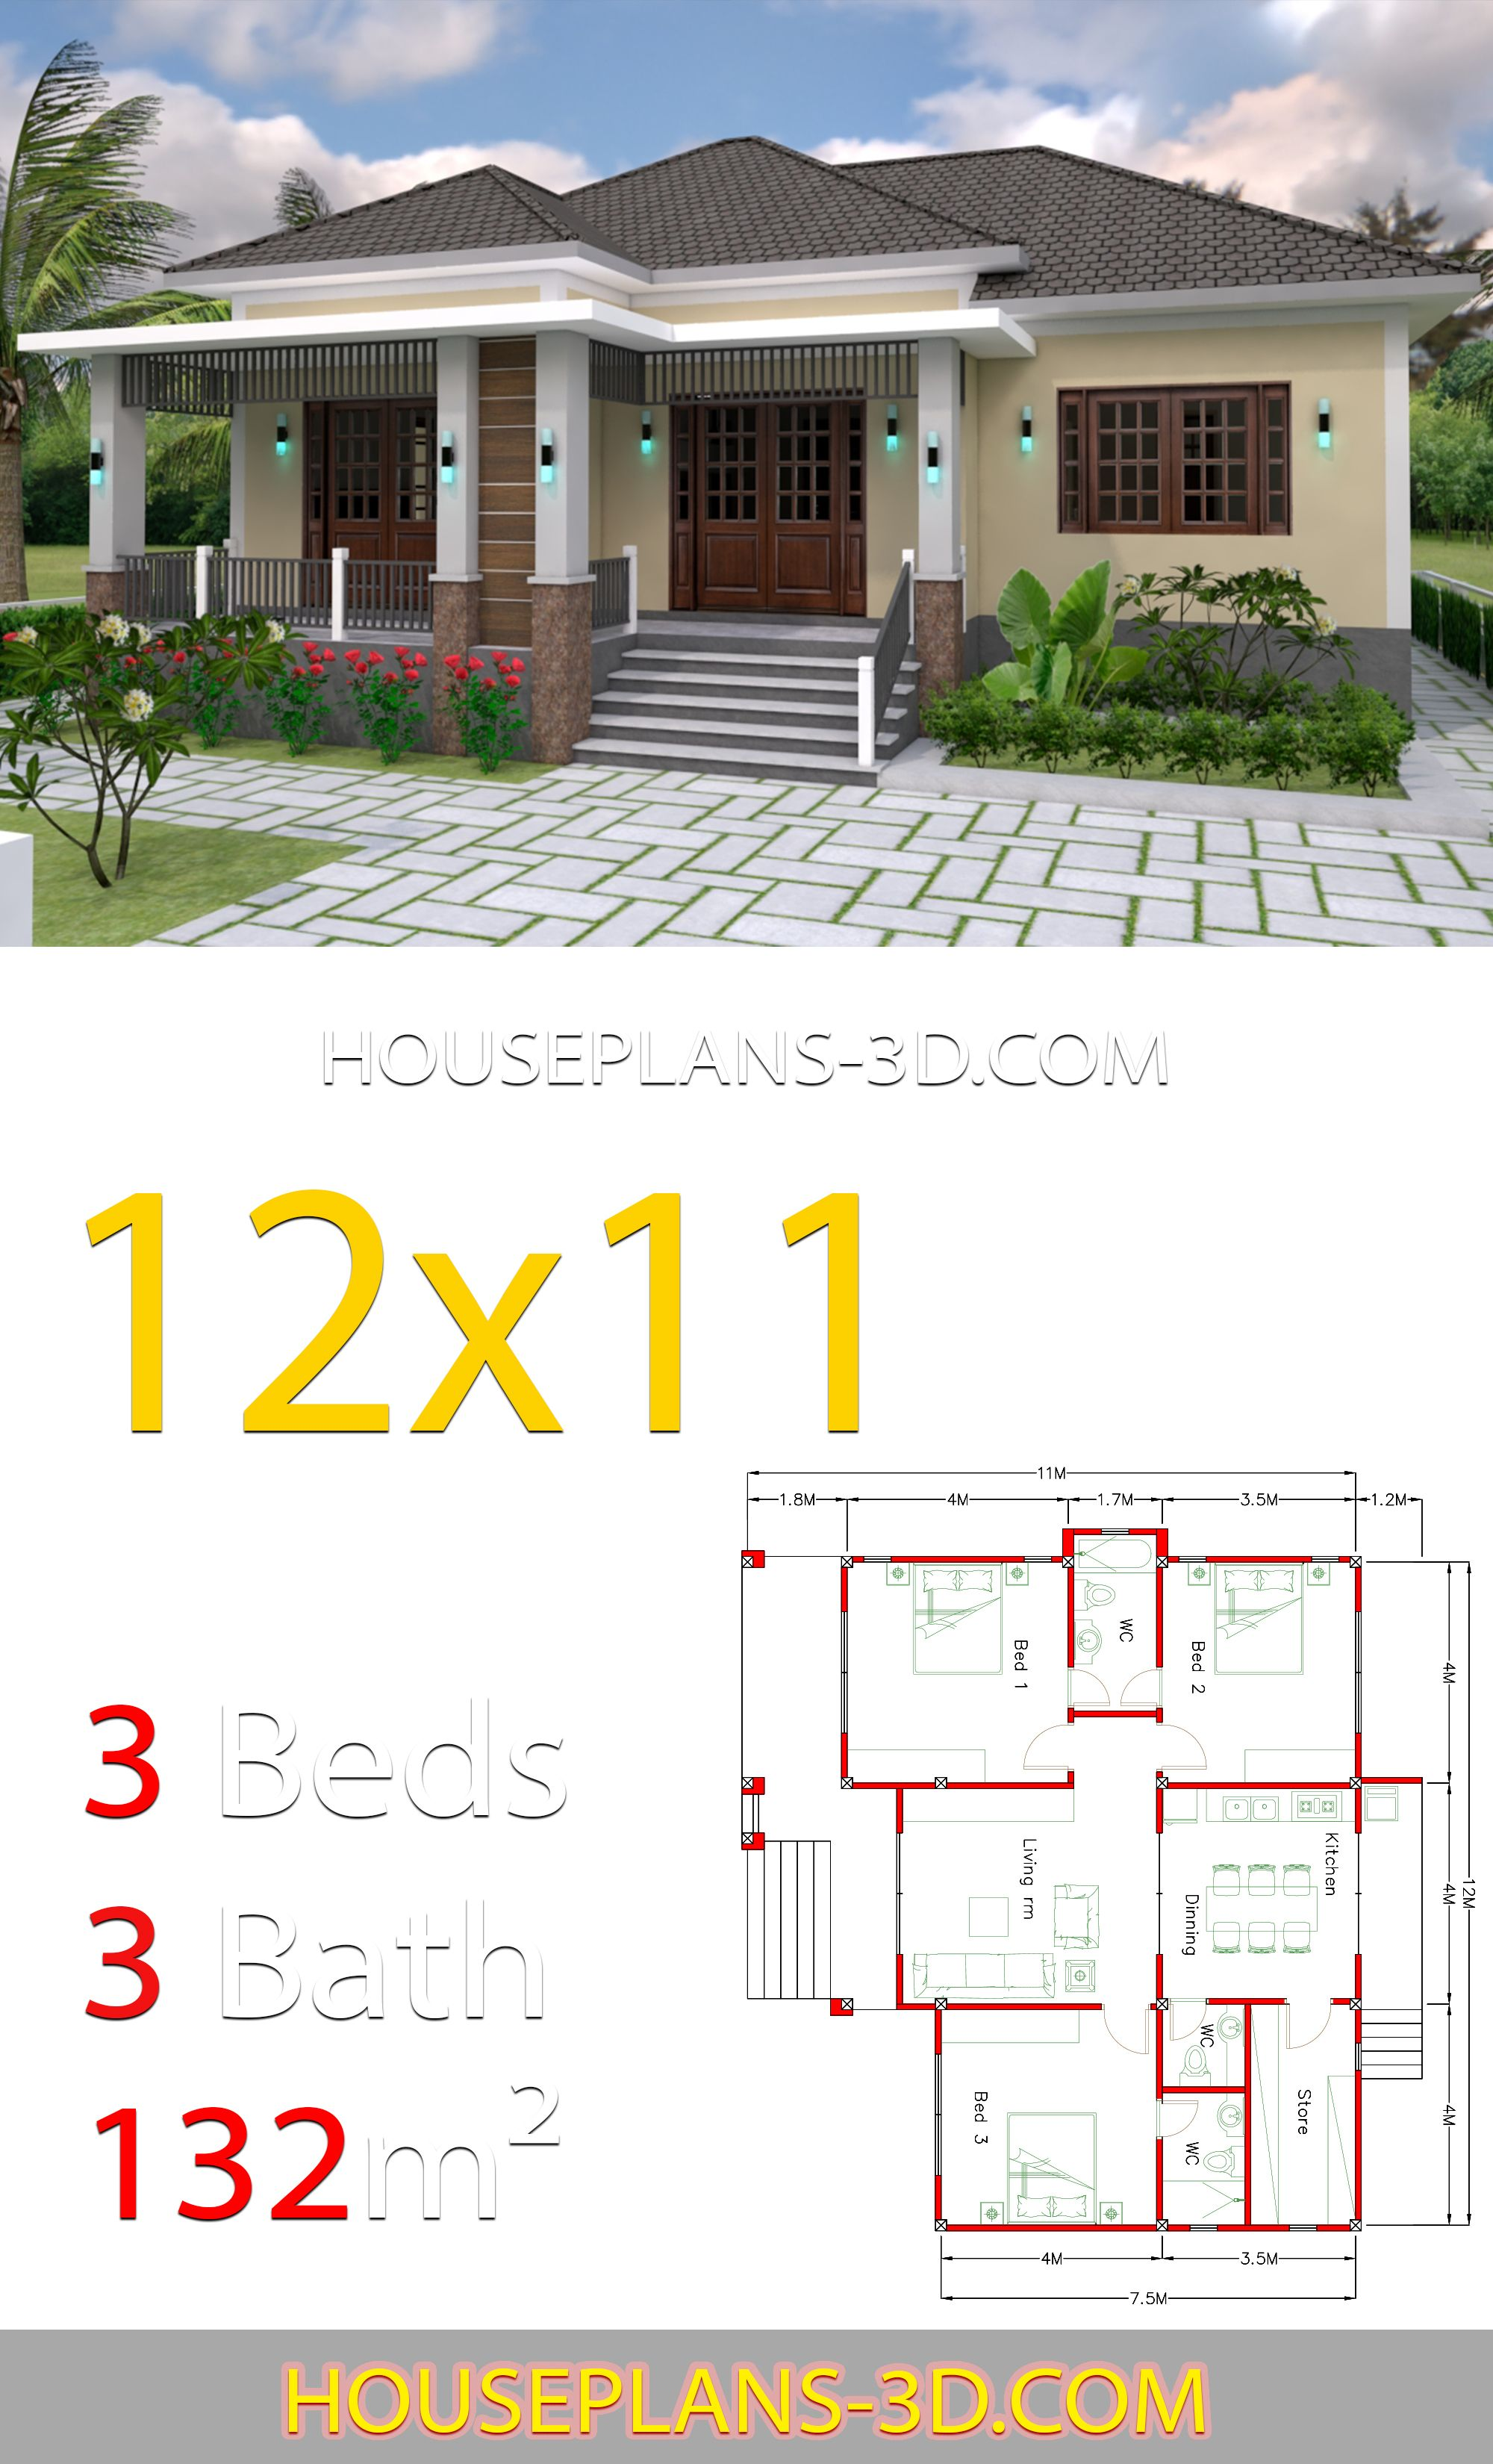 Home Design 12x11 With 3 Bedrooms Hip Roof House Plans 3d House Roof Bungalow House Plans Three Bedroom House Plan